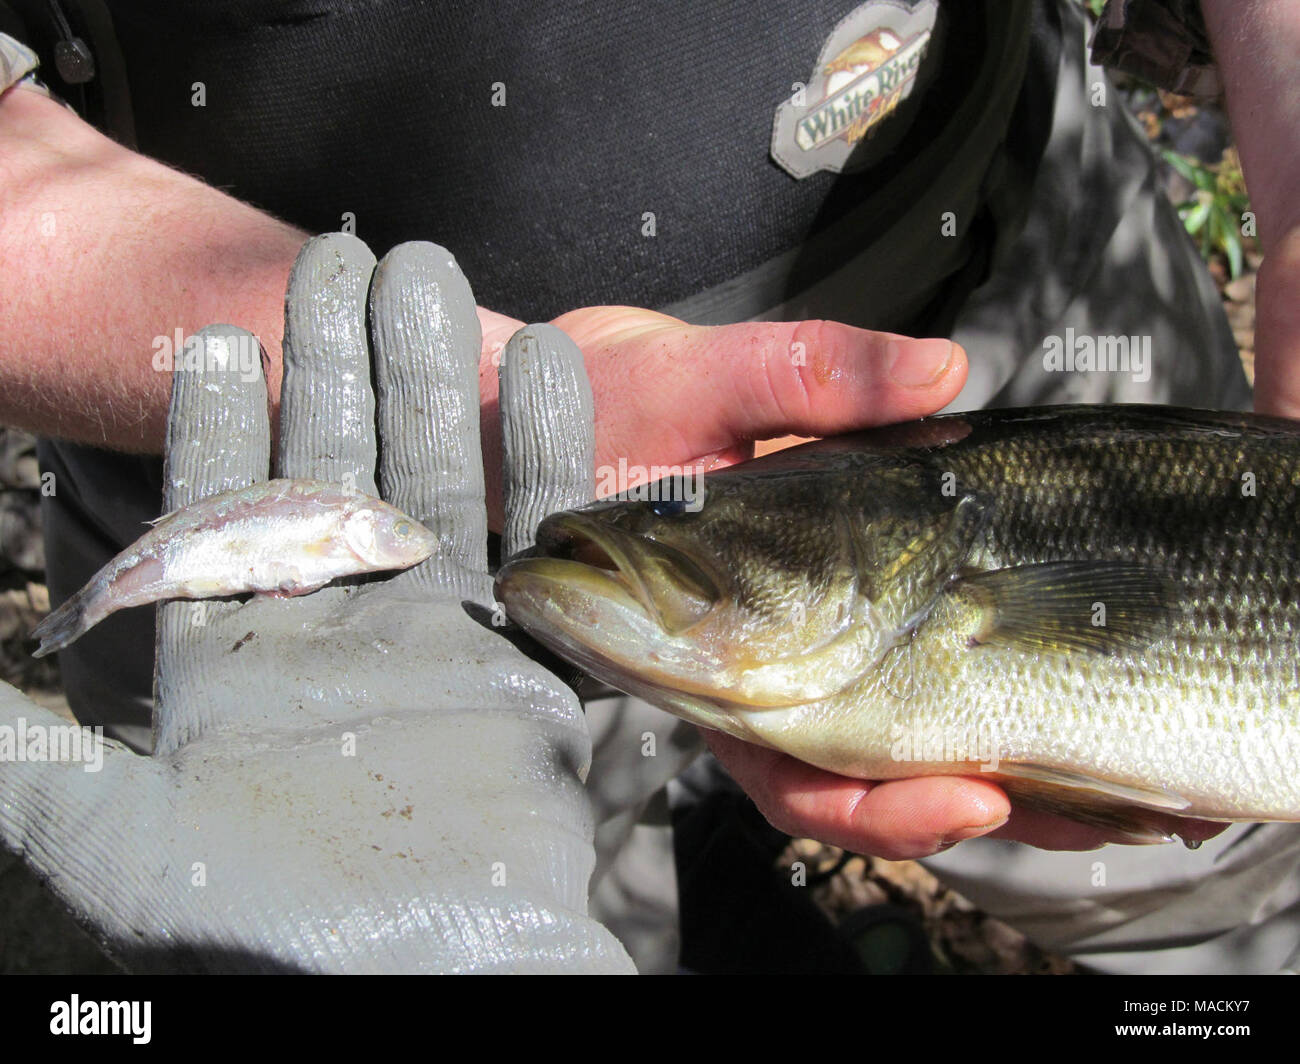 Santa Ana sucker conservation. This large mouth bass removed from the habitat of the Santa Ana sucker had been munching on another little native fish called the arroyo chub. Removing nonnative species is one way to help recover the Santa Ana sucker. () - Stock Image